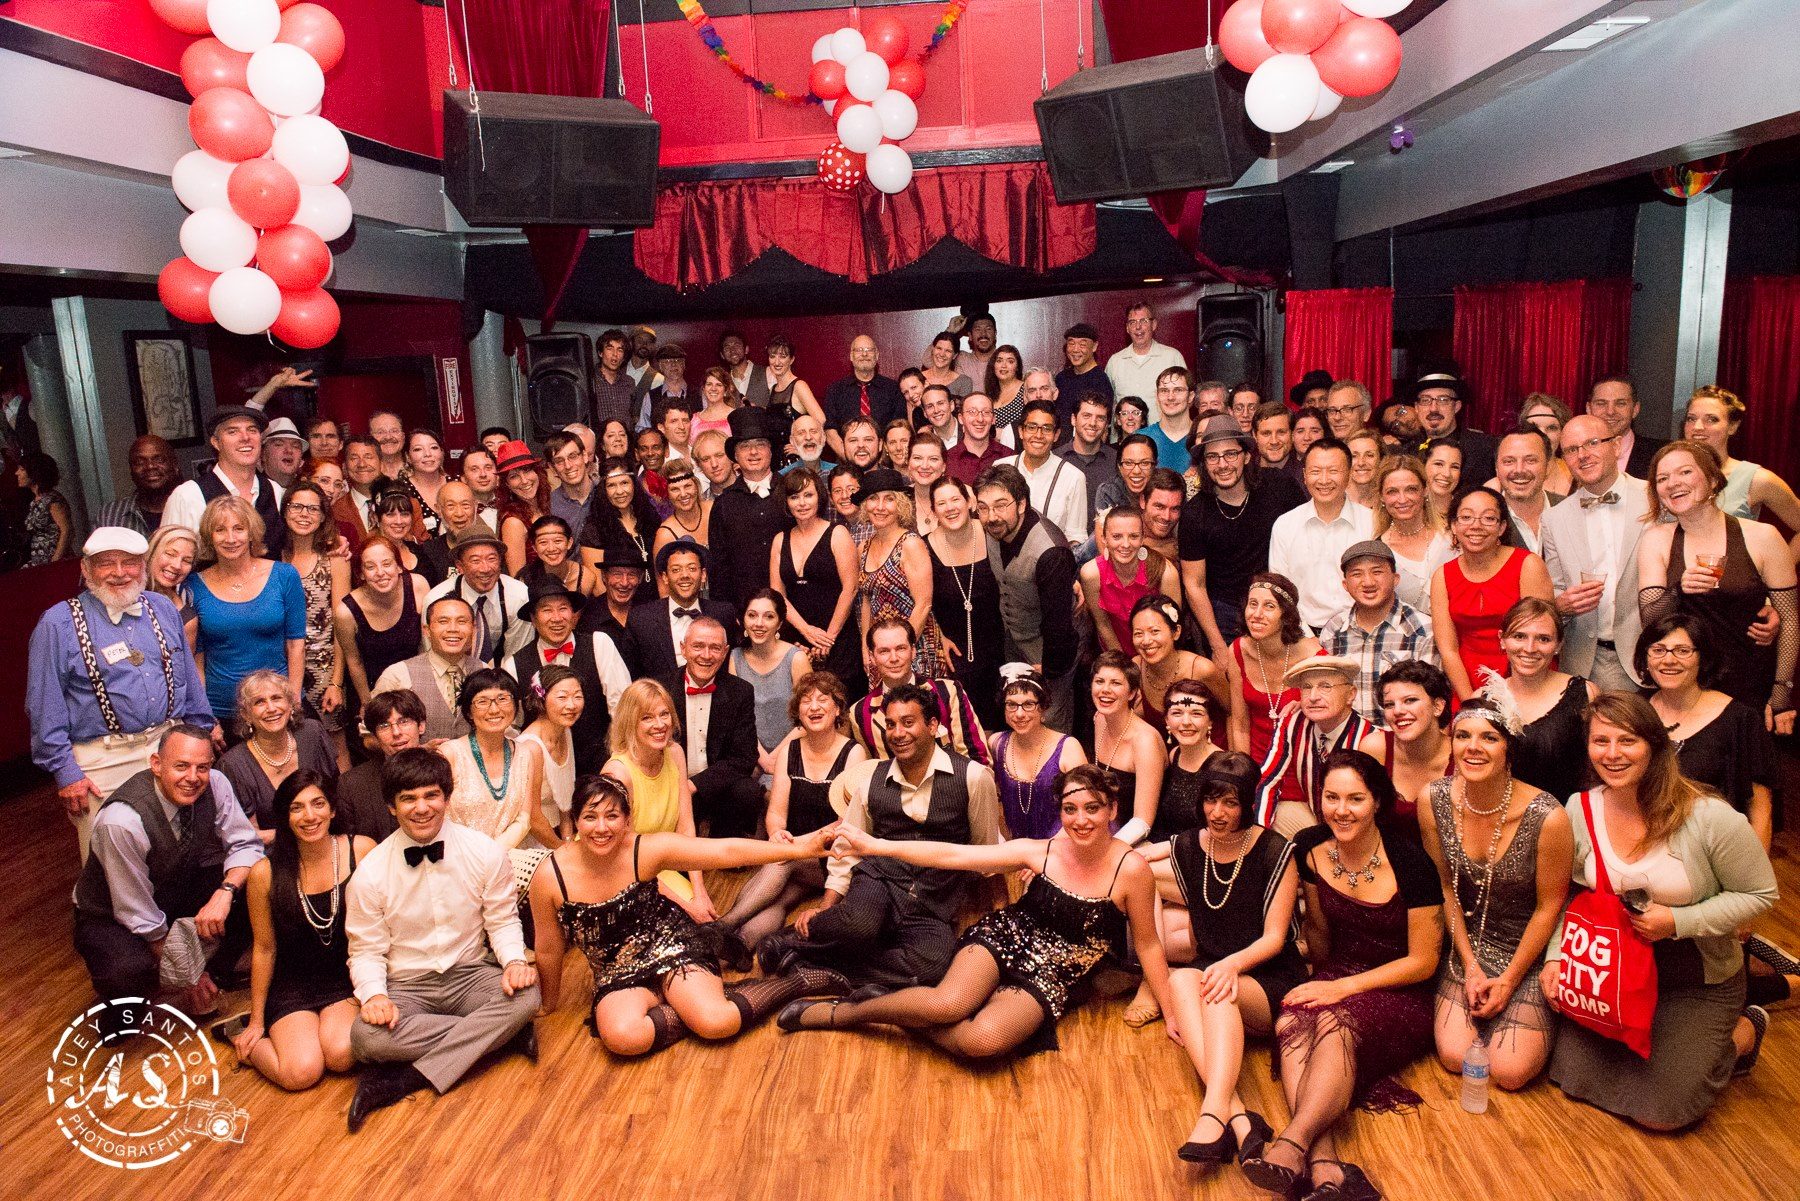 Sacramento Swinger Parties And Sacramento Swinger Clubs Are Now Available